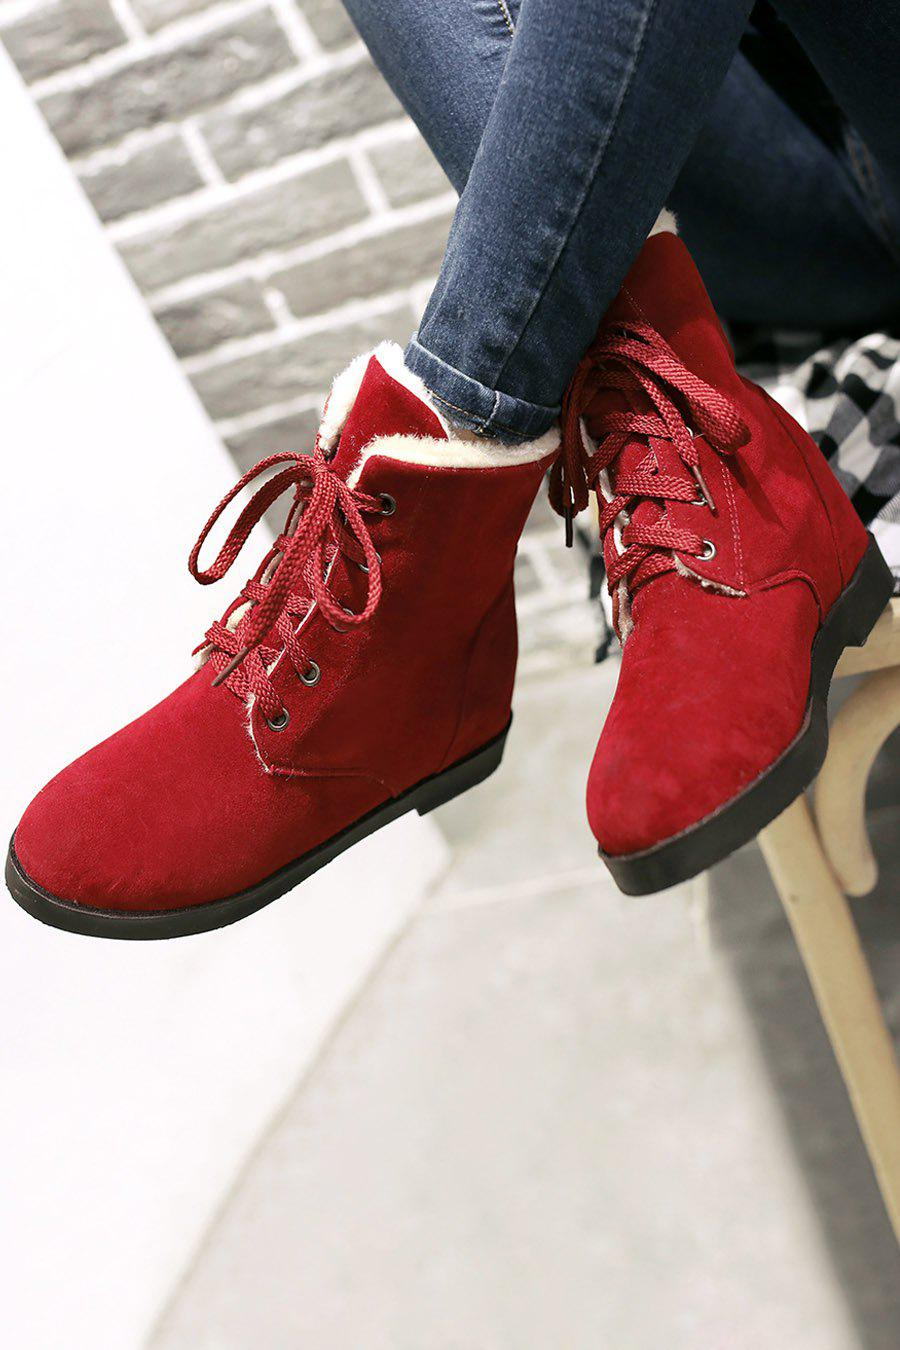 Concise Women's Short Boots With Lace-Up and Solid Colour Design - WINE RED 38